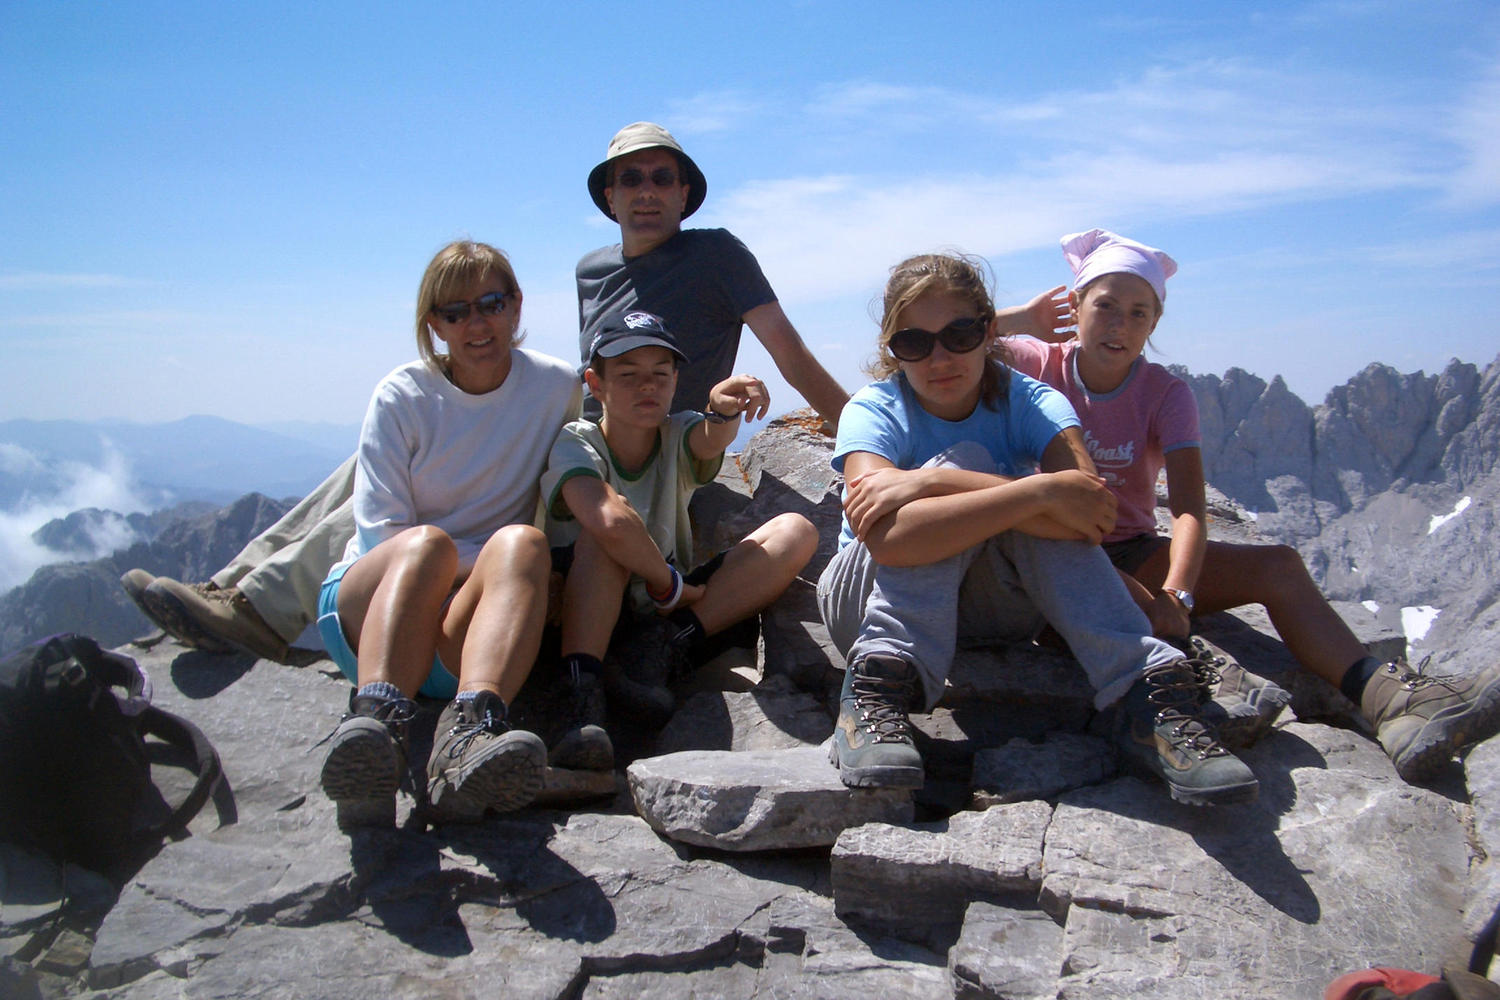 Family in the summit of Horcados Rojos.